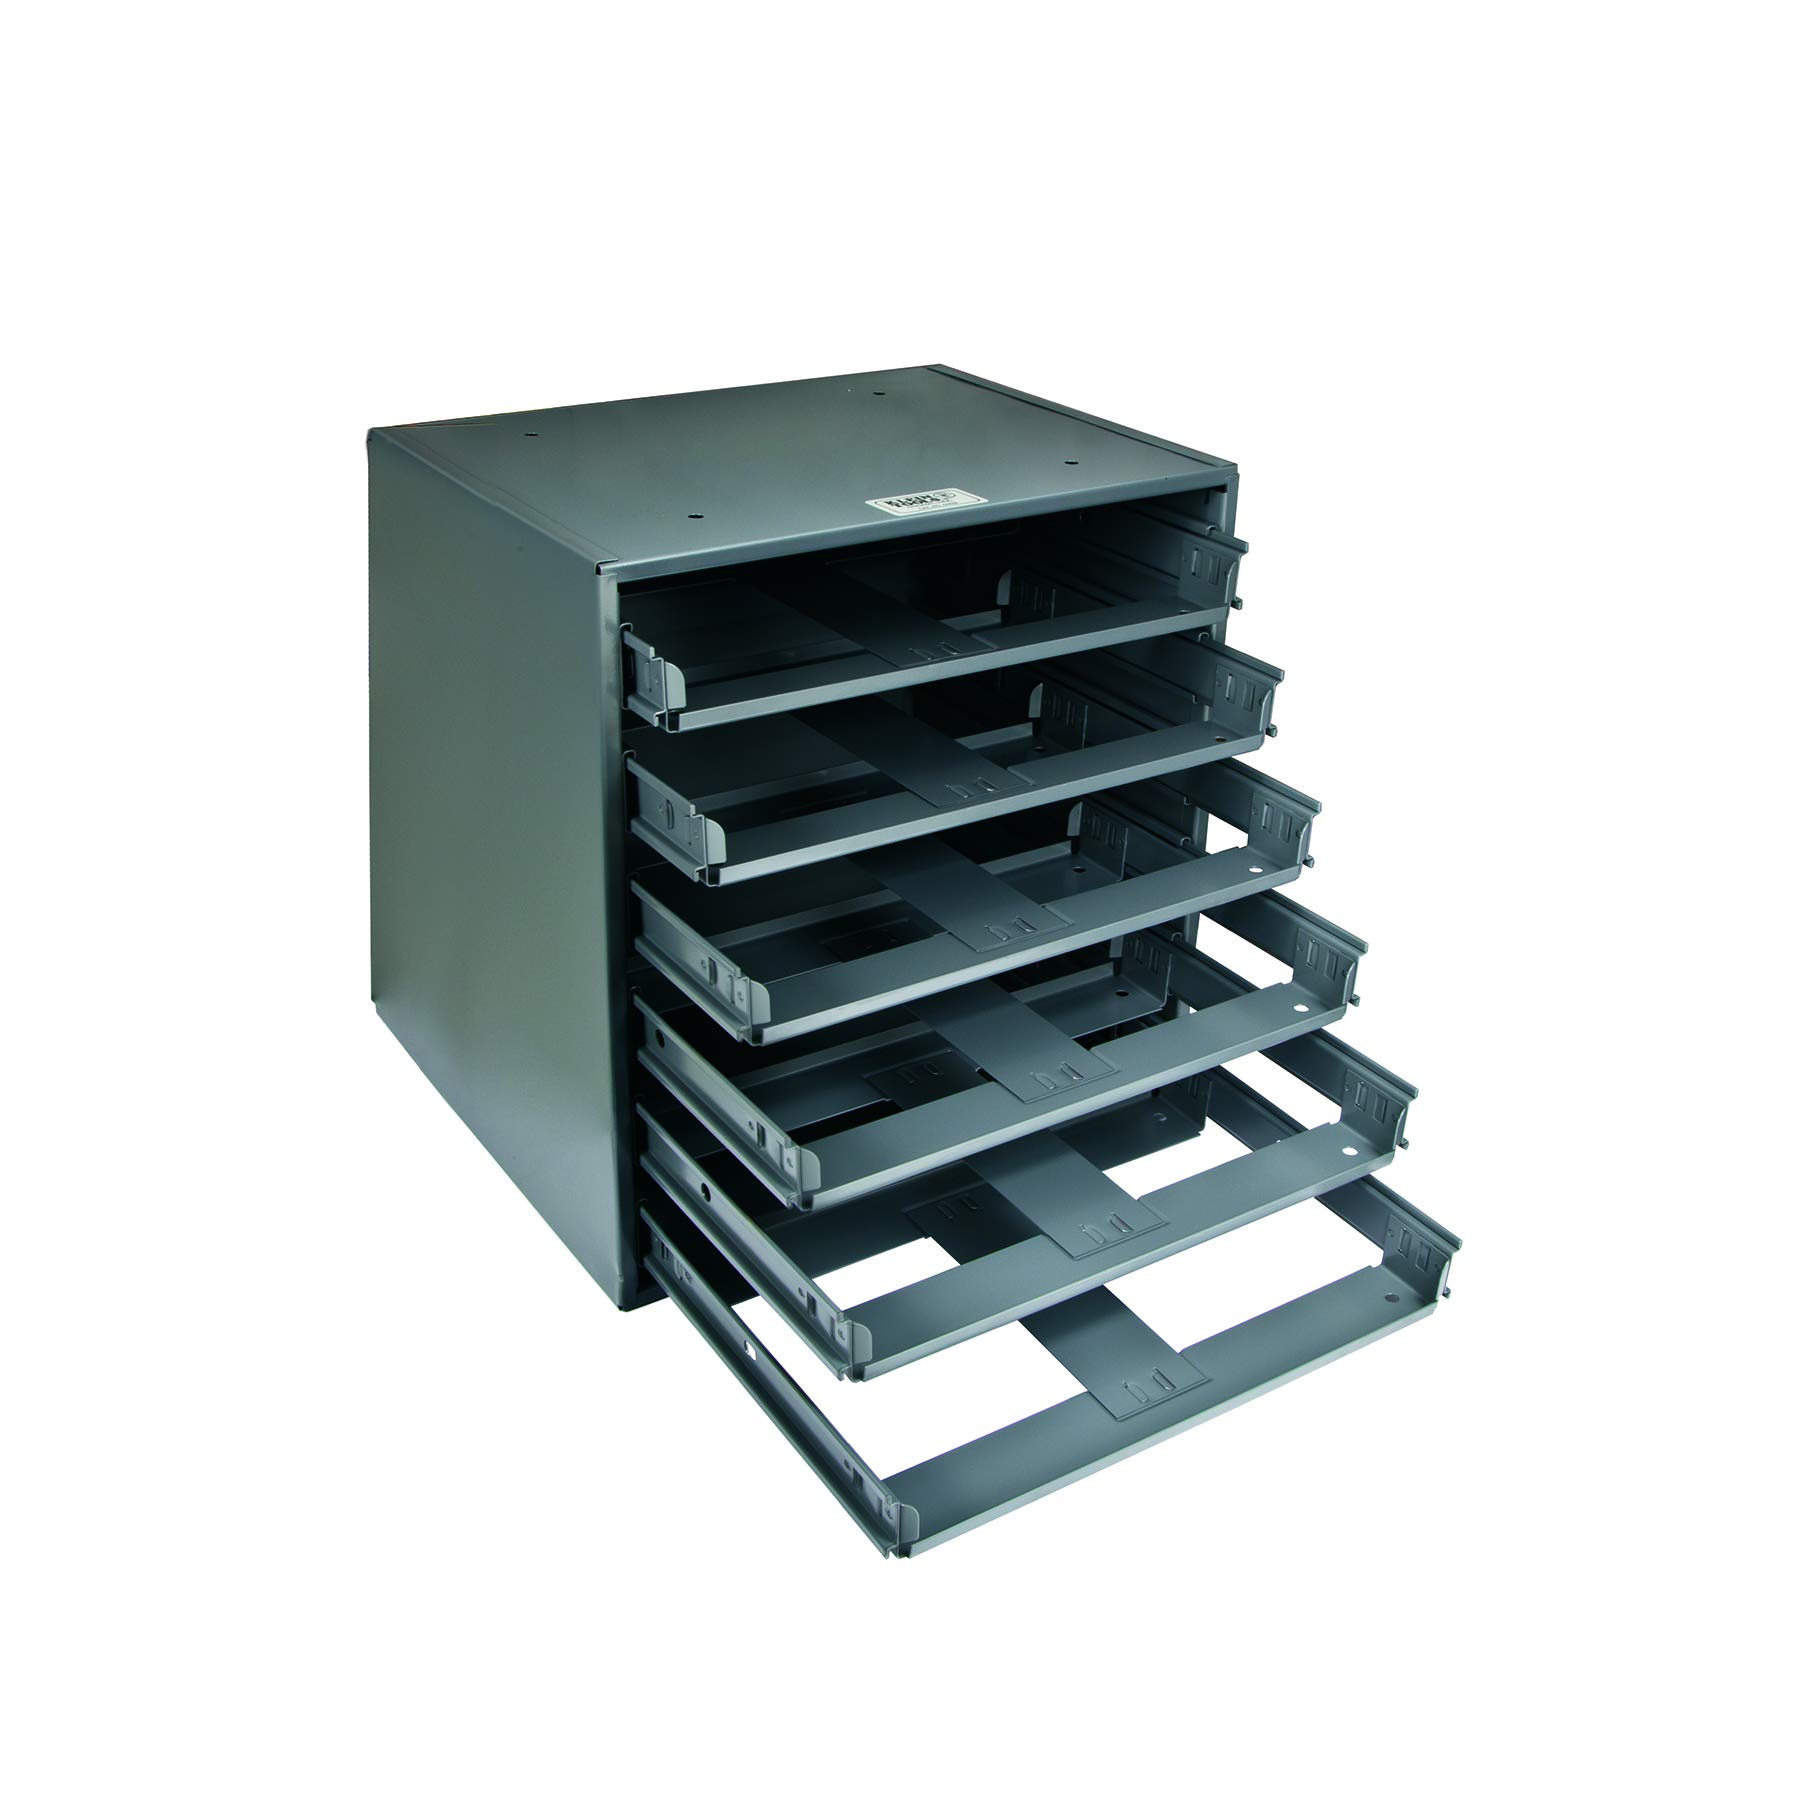 Klein Tools 54476 Slide Rack, 6-Box, 16-3/8-Inch Height